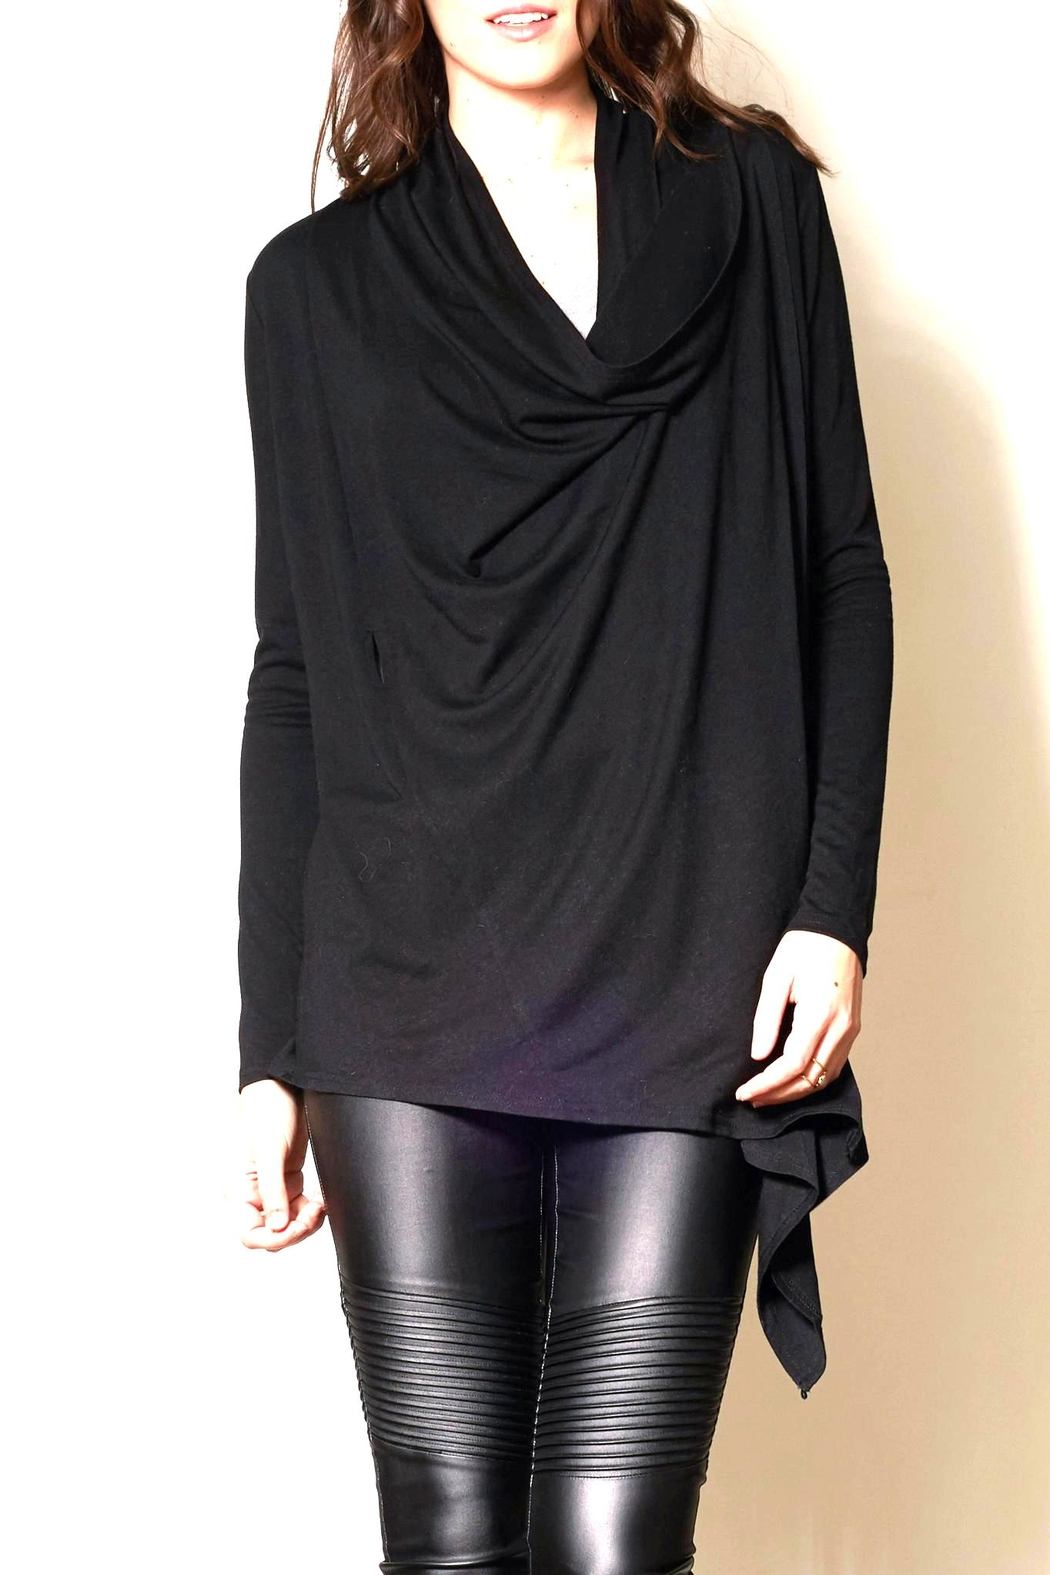 Pink Martini Black Wrap Cardigan from Ontario by Steel Style ...